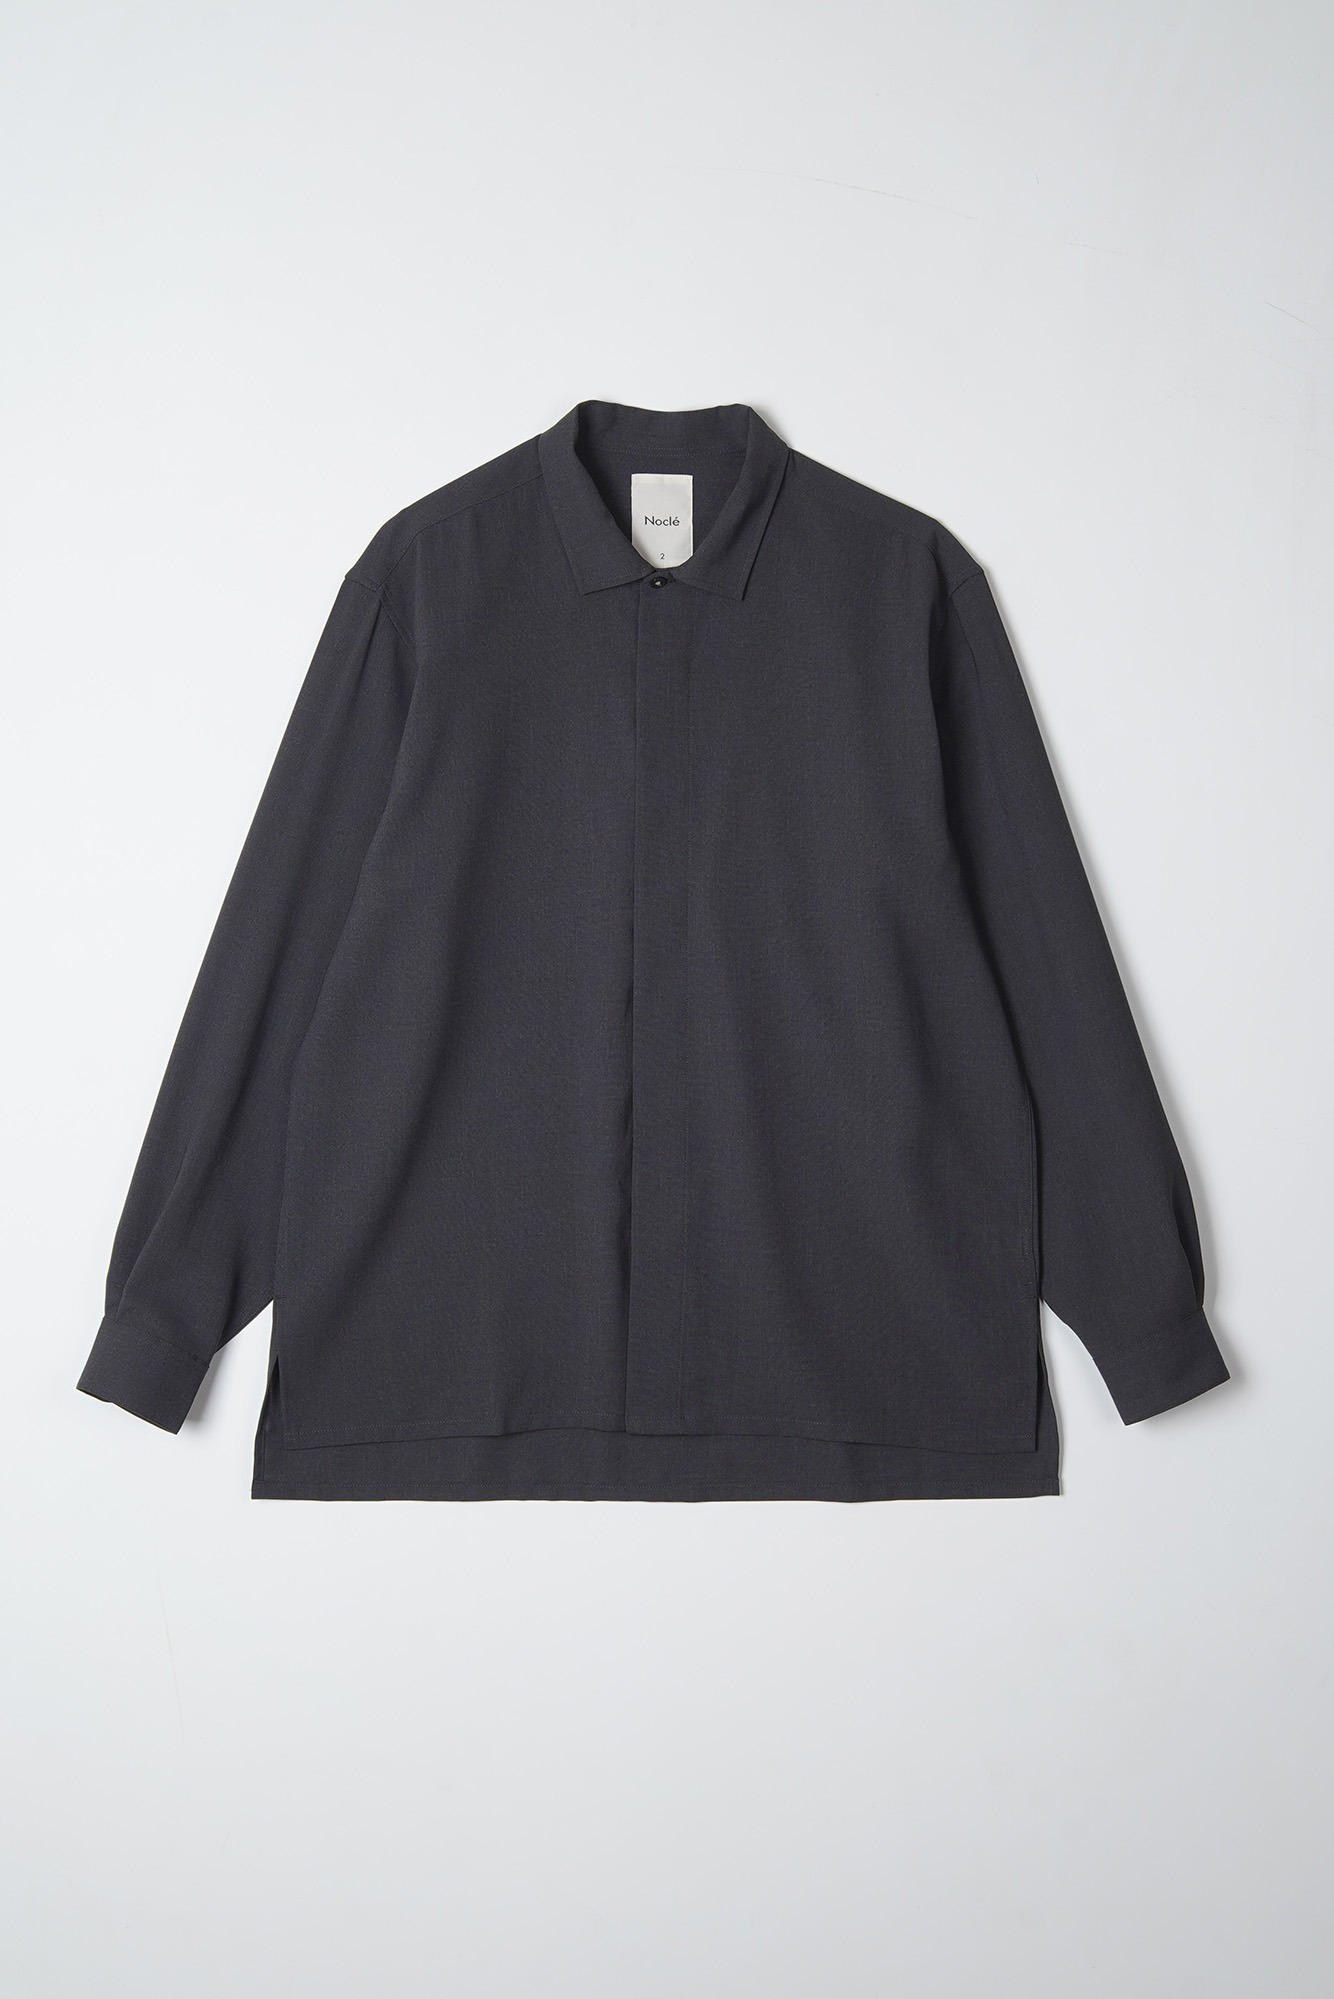 "Noclé Hidden Minimal Shirts ""Charcoal"""